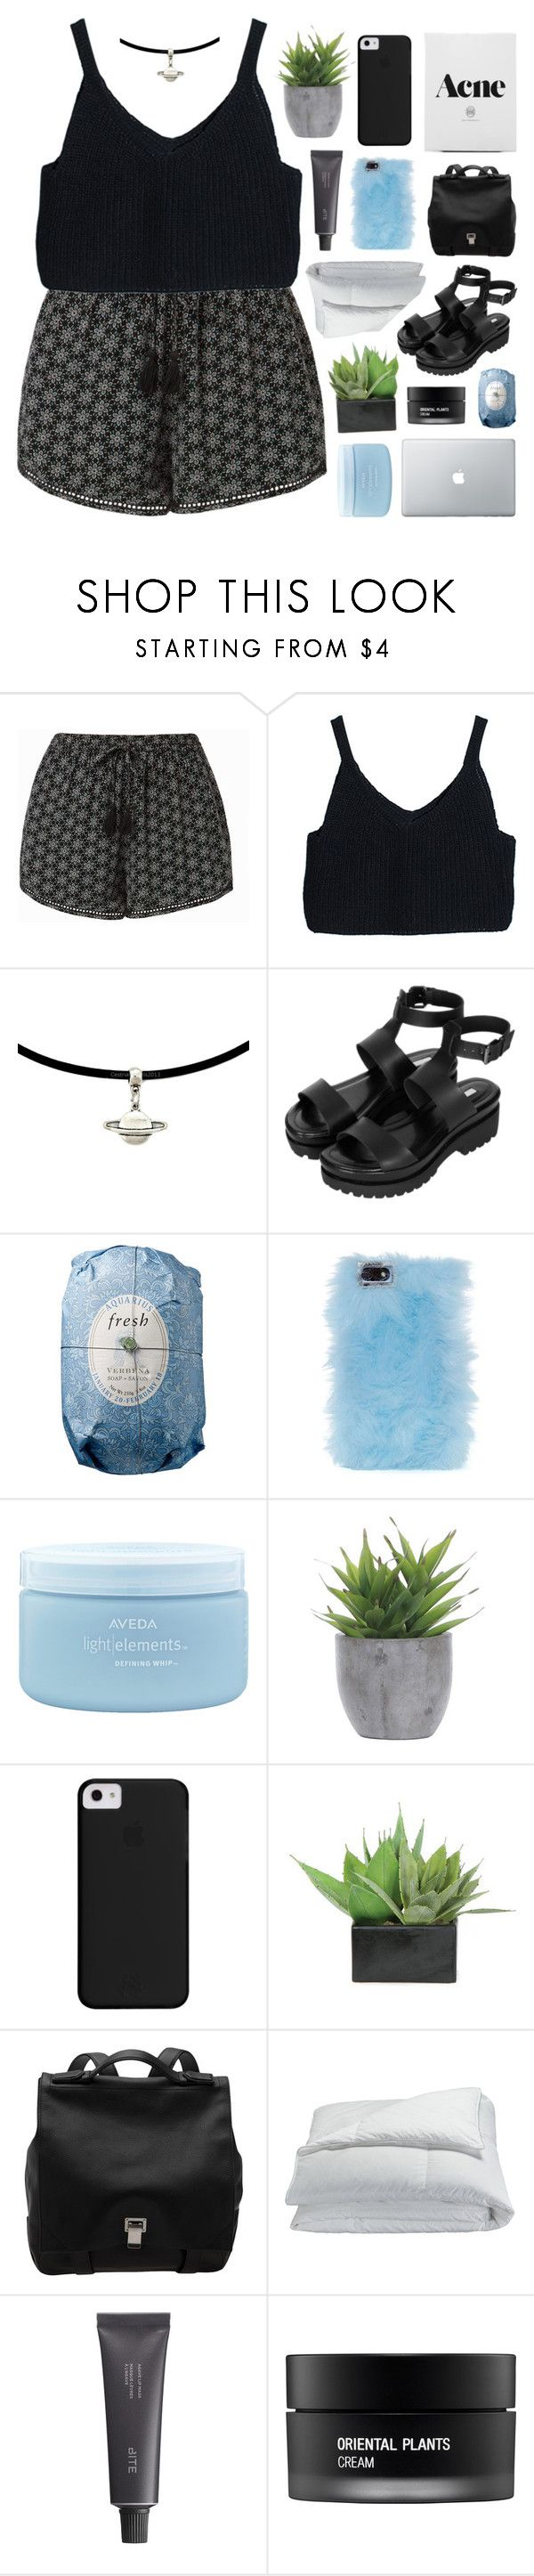 """""""AMSTERDAM / TESTING TAGS""""  ❤ liked on Polyvore featuring Topshop, Fresh, Skinnydip, Aveda, Lux-Art Silks, Proenza Schouler, Frette, Bite and Koh Gen Do"""